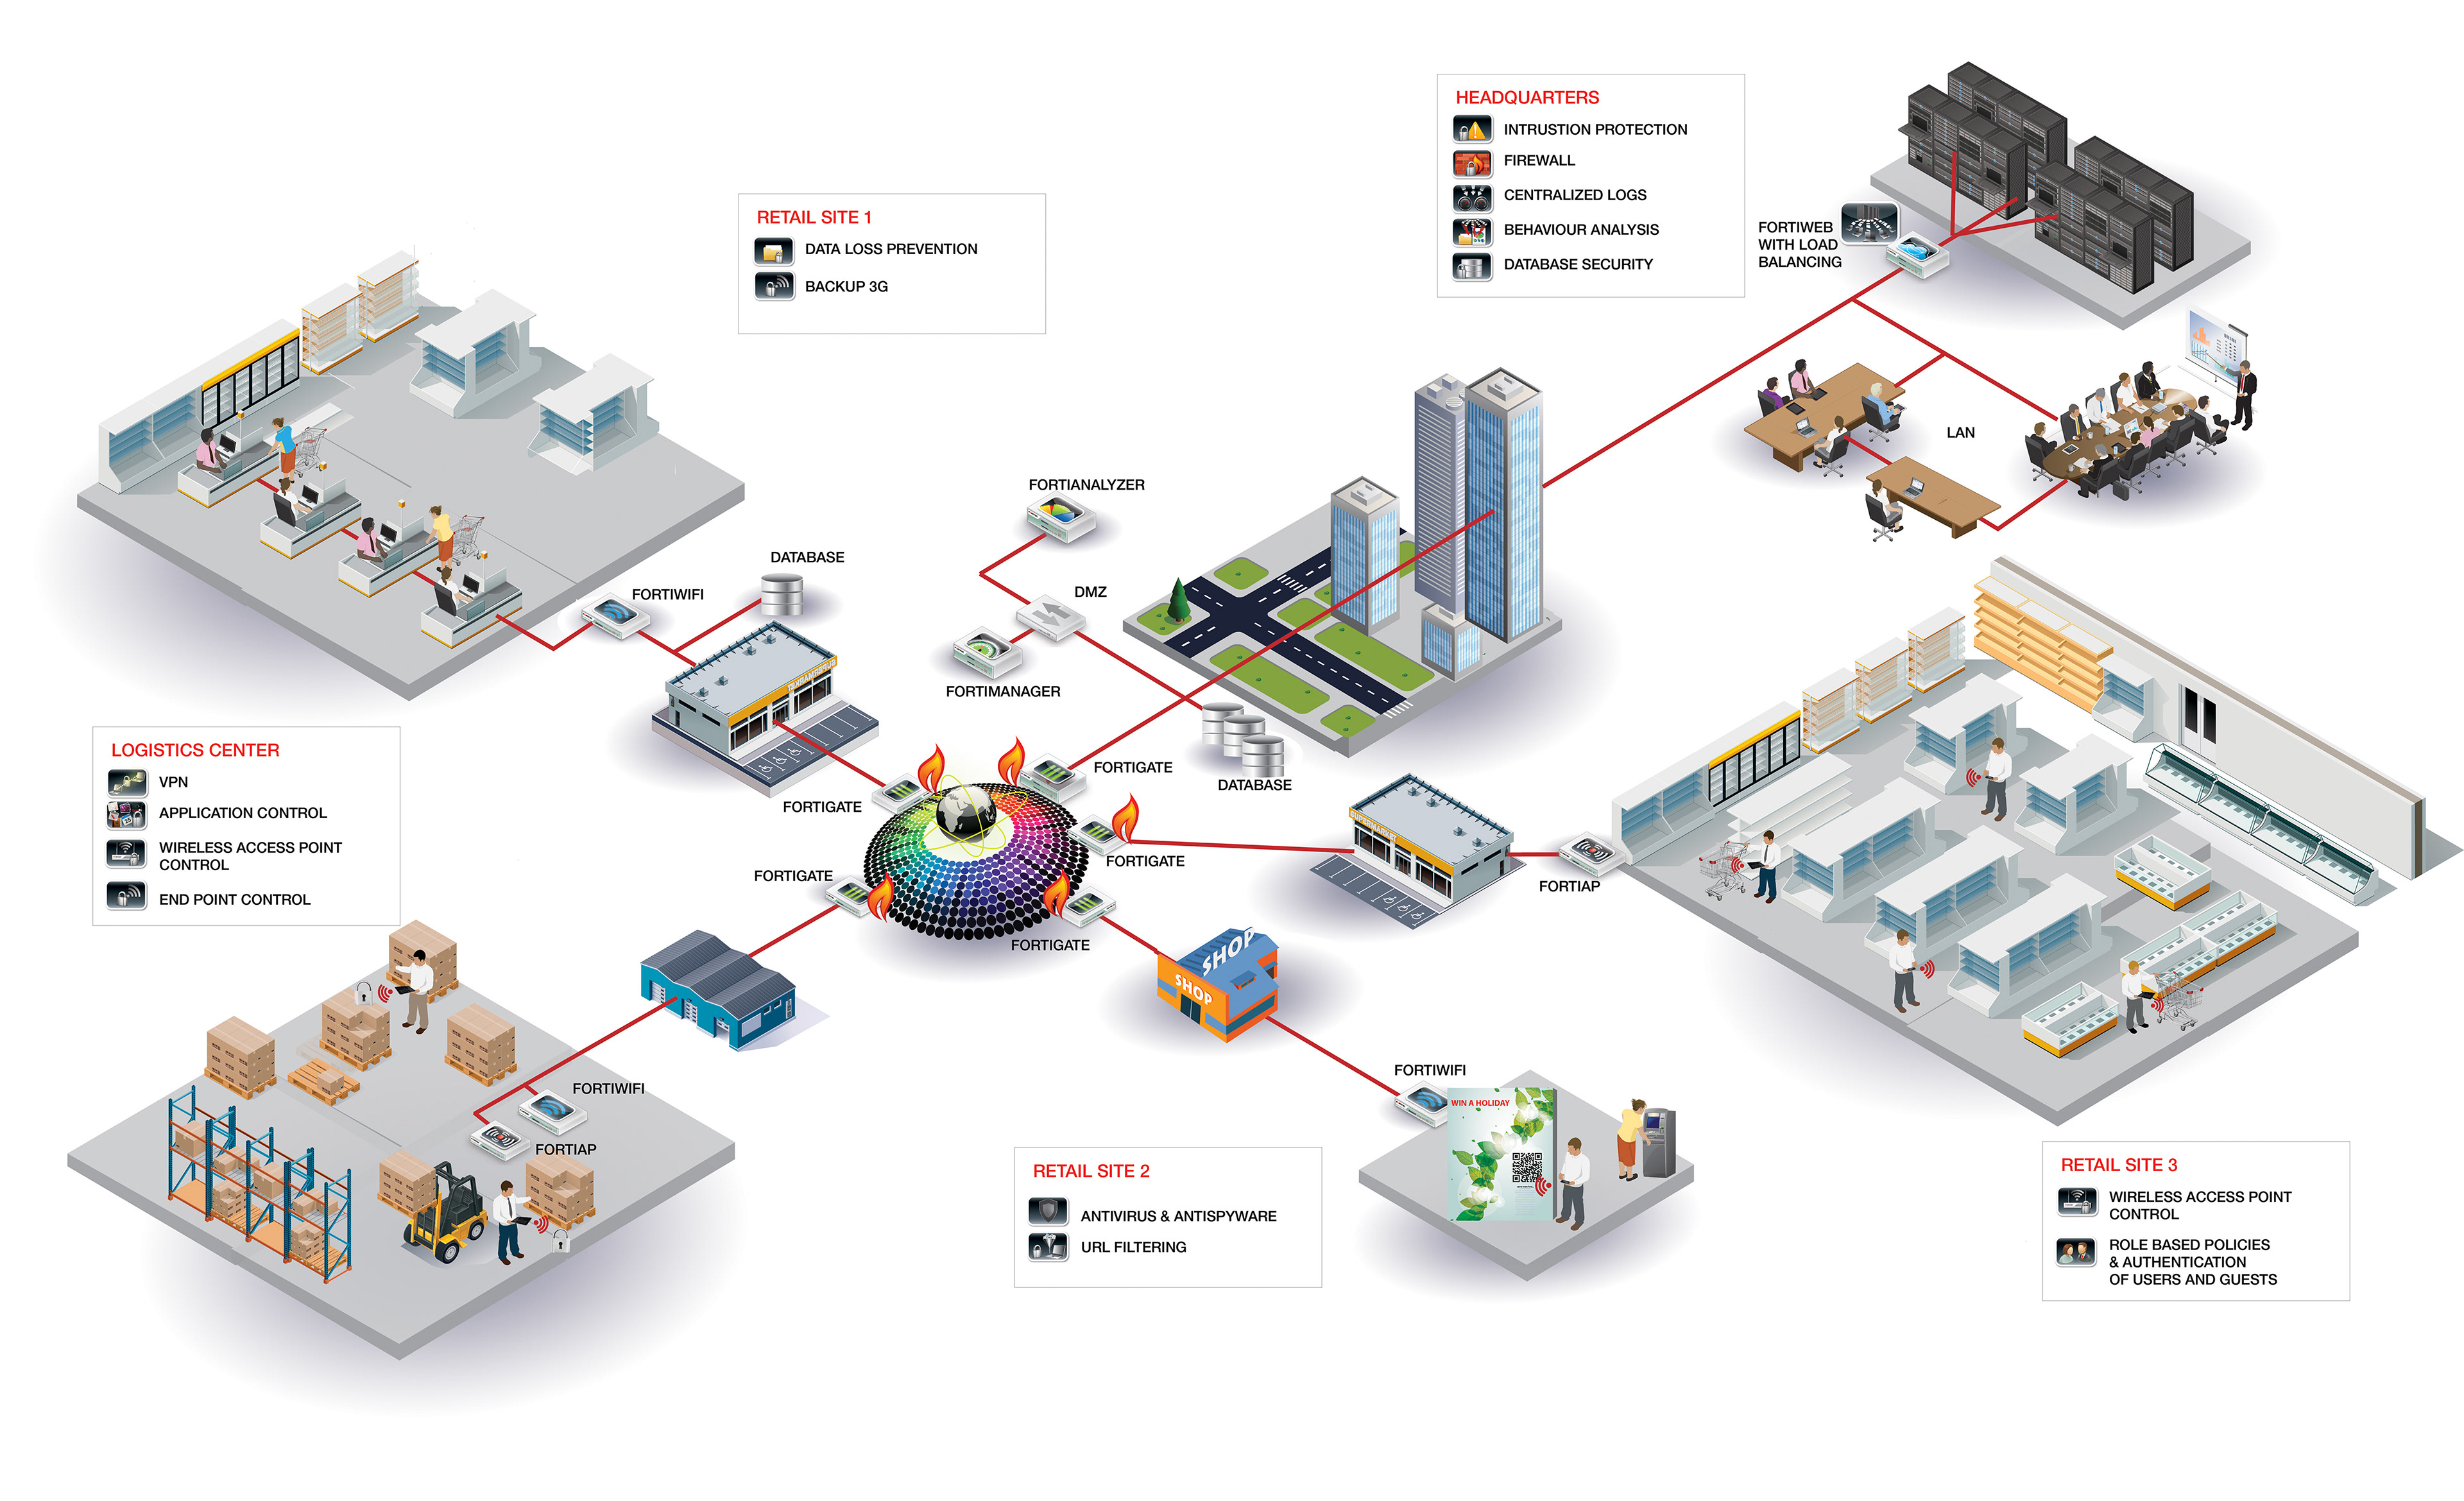 Simon Shaw Fortinet Secure Retail Network 3d Diagram